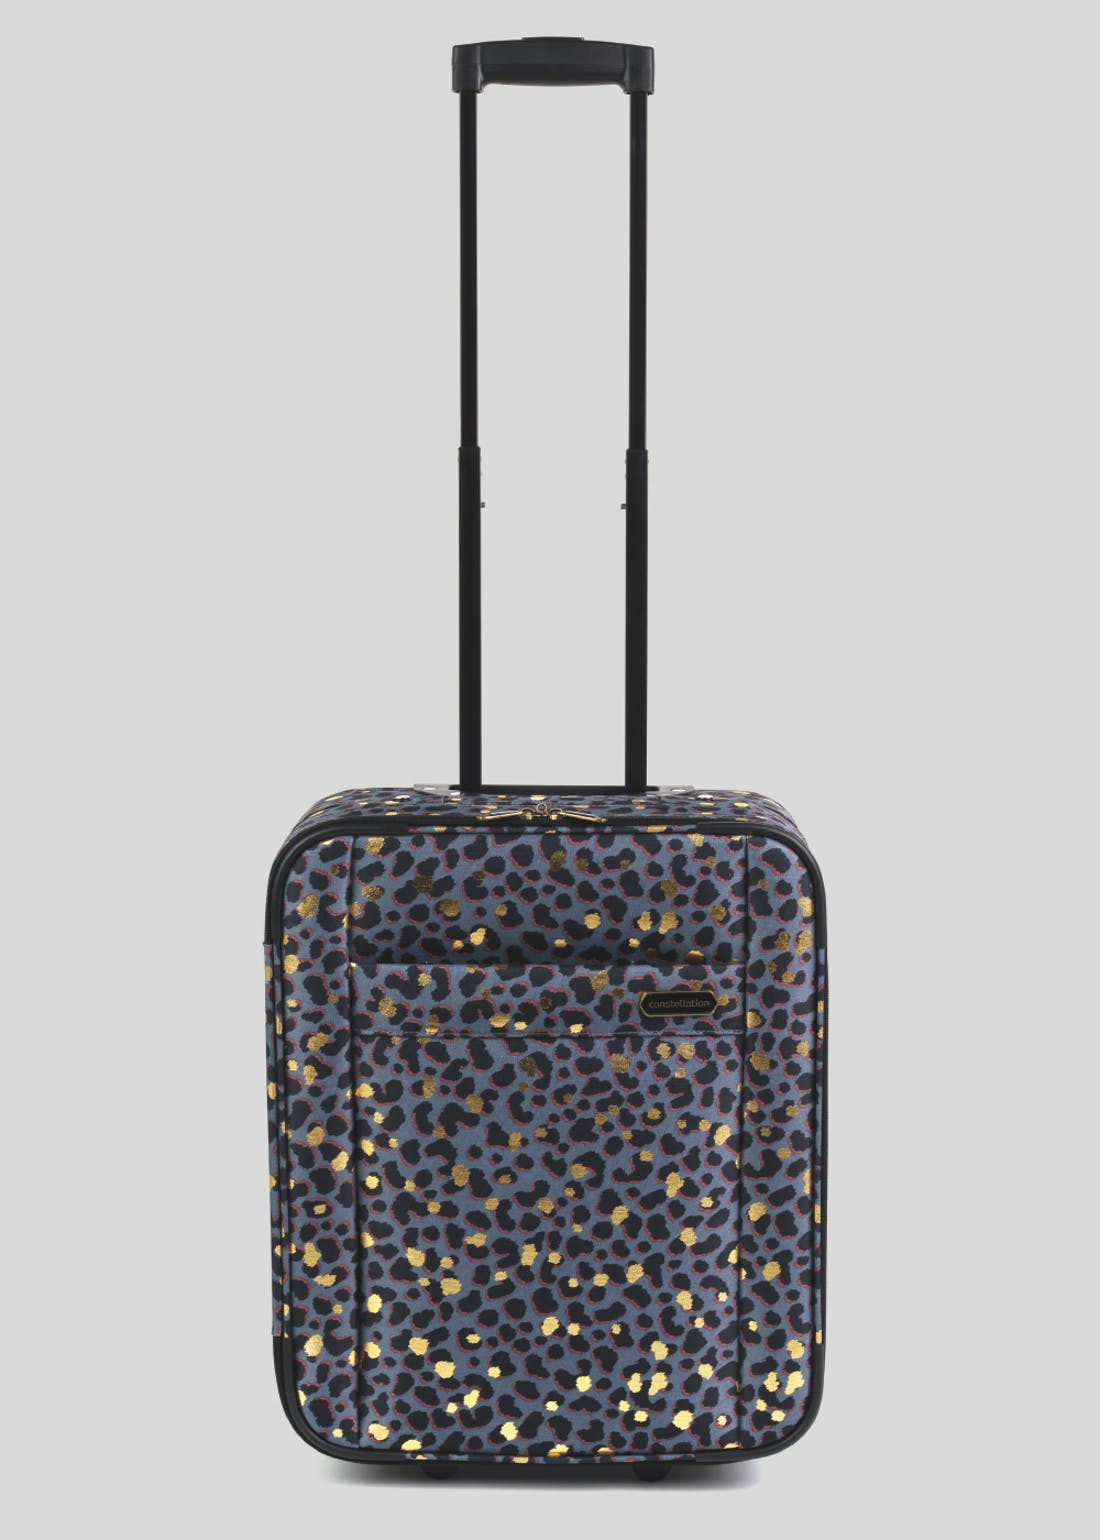 Constellation EasyJet Approved Cabin Bag